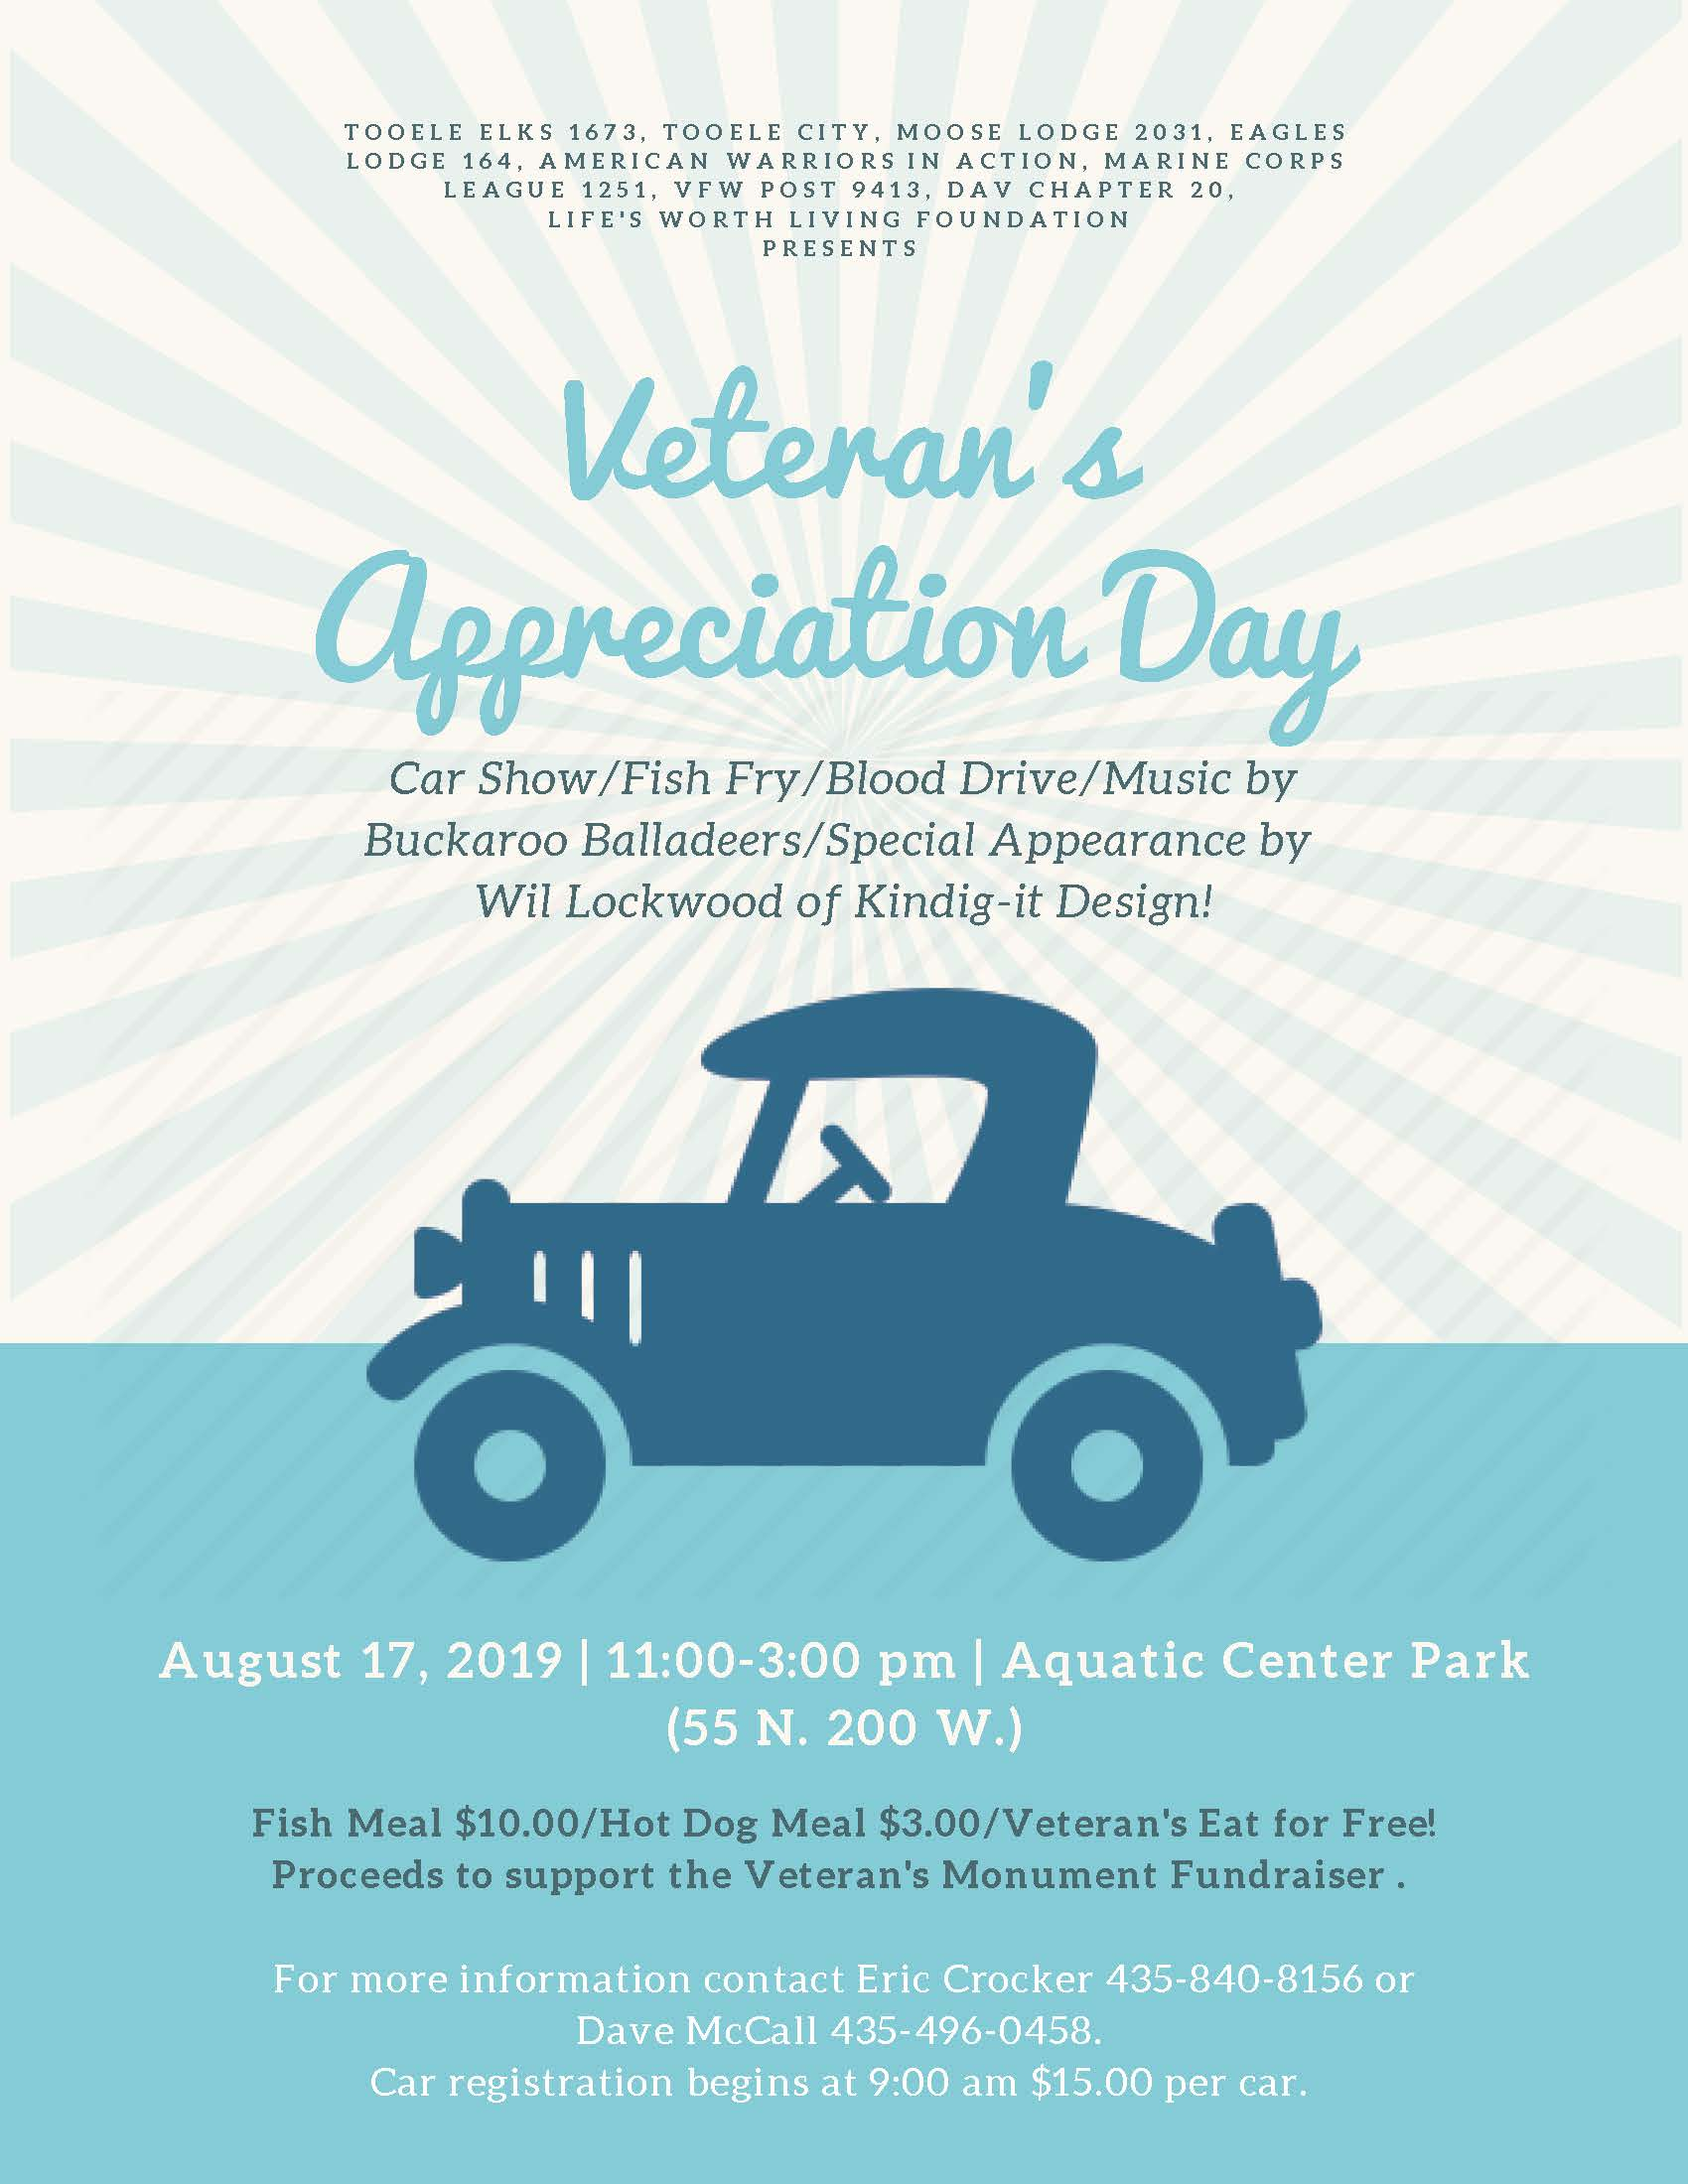 Veteran's Appreciation Day and Car Show @ Aquatic Center Park